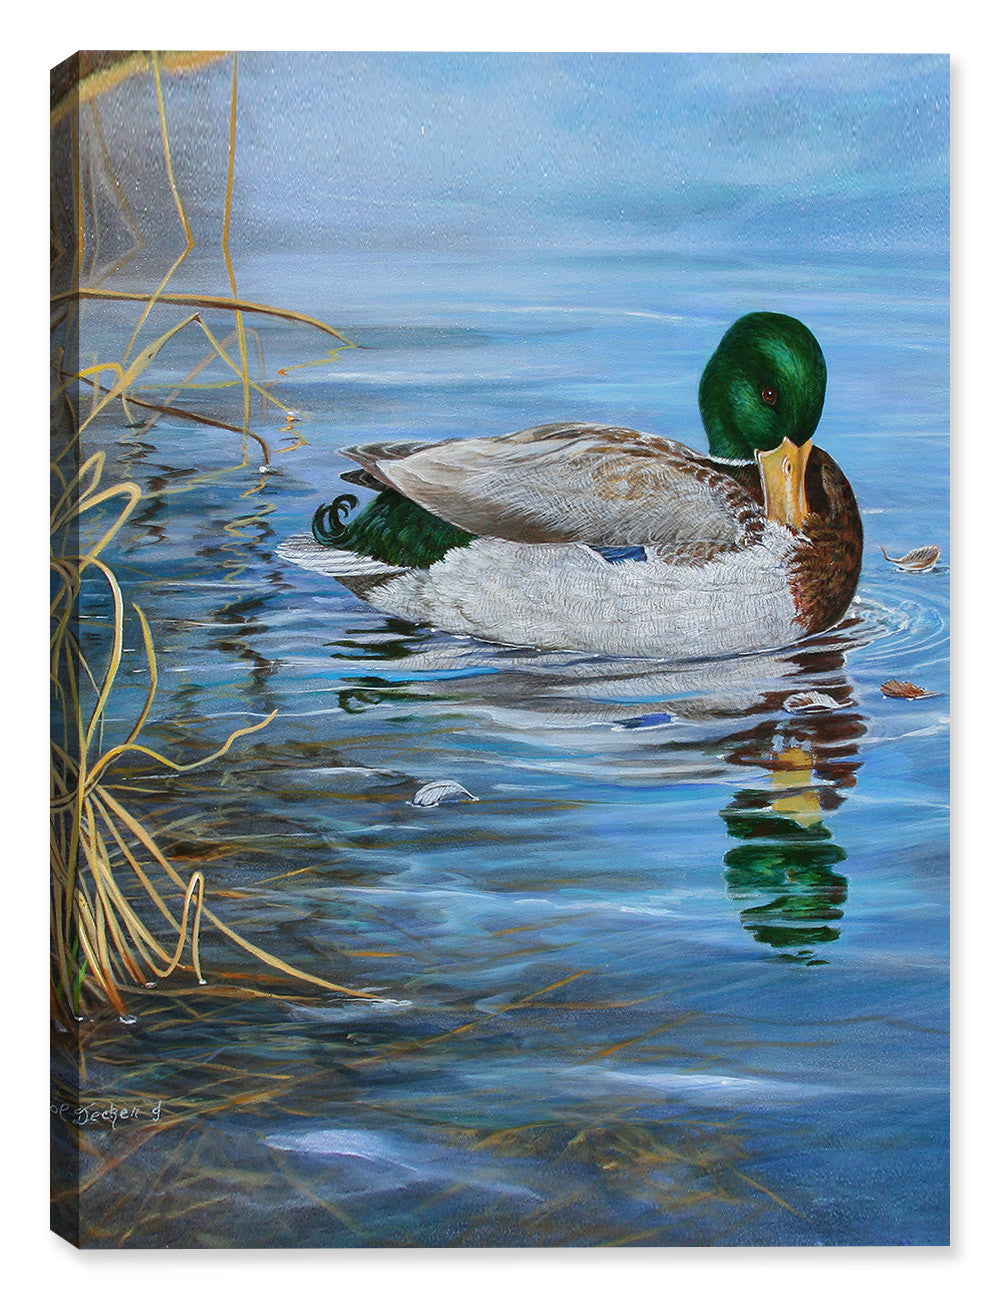 Grooming Mallard by Carol Decker - Canvas Art Plus